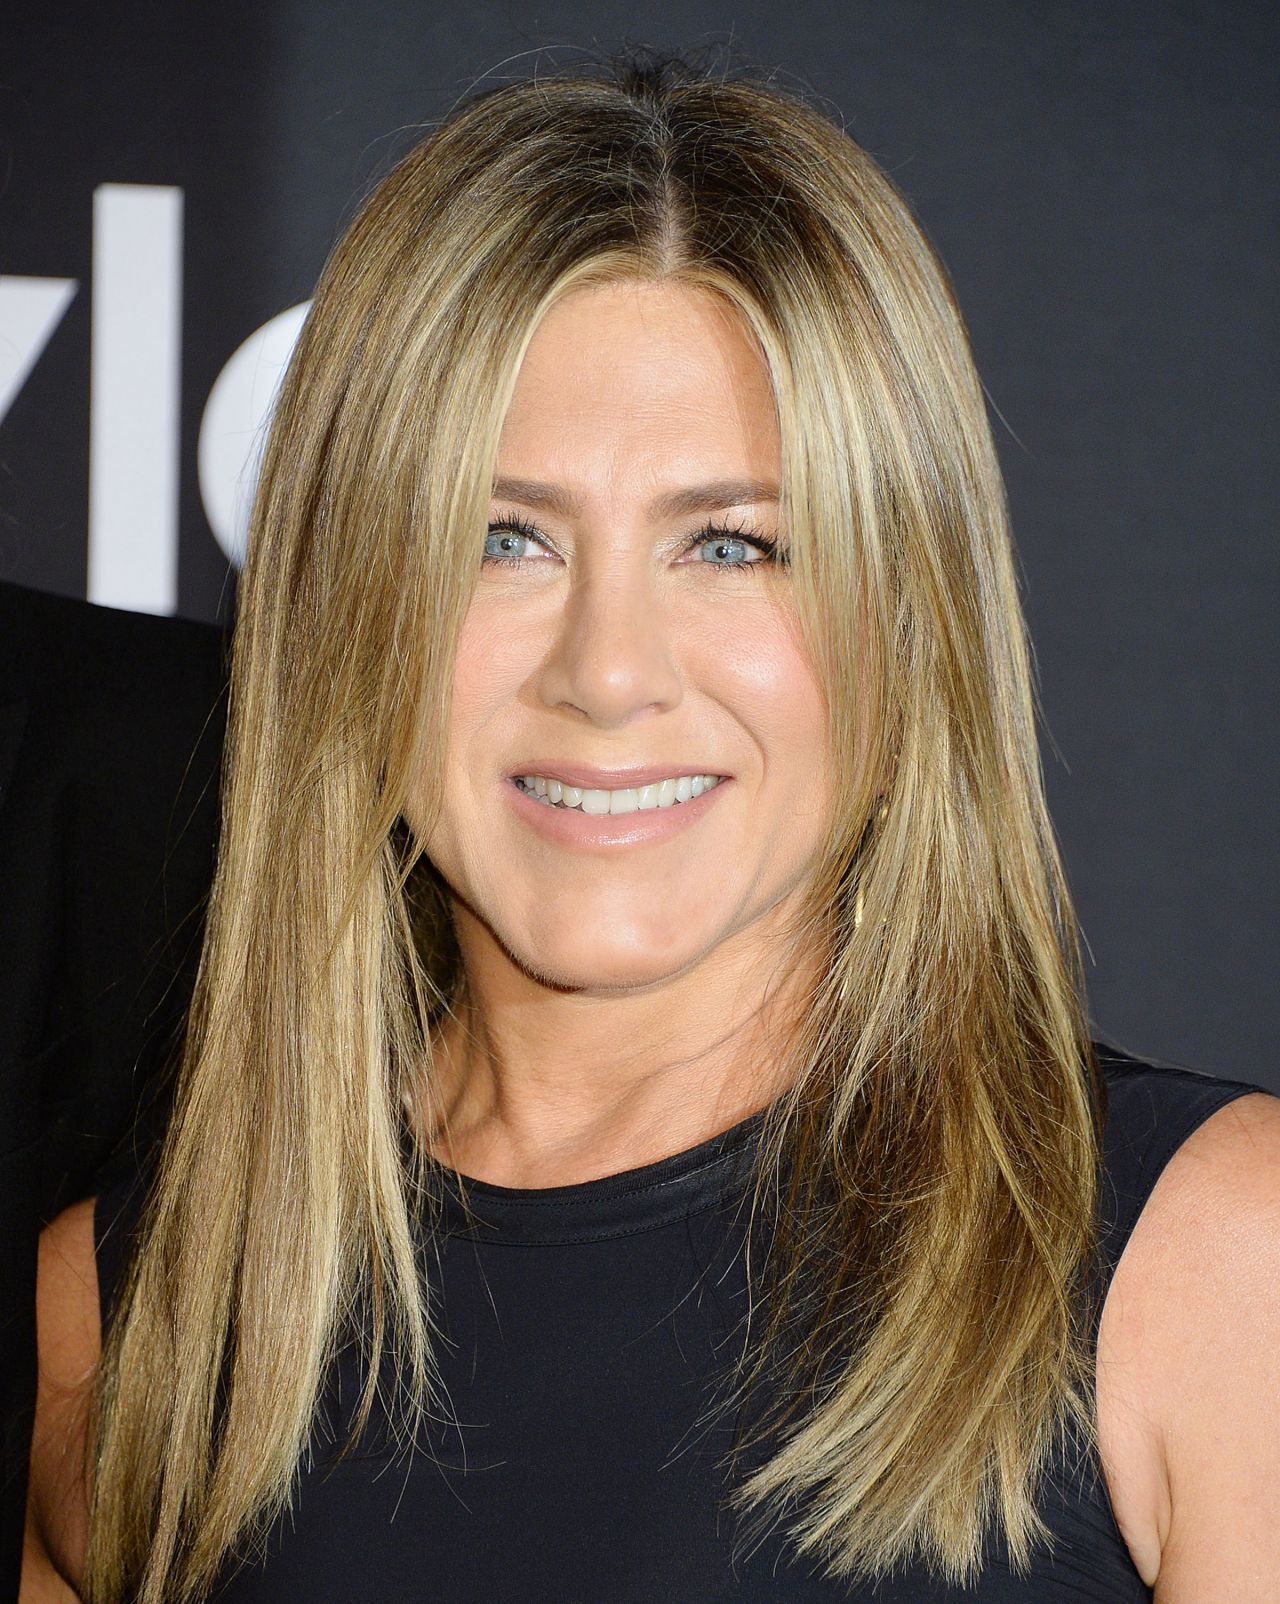 https://celebmafia.com/wp-content/uploads/2018/10/jennifer-aniston-2018-instyle-awards-7.jpg